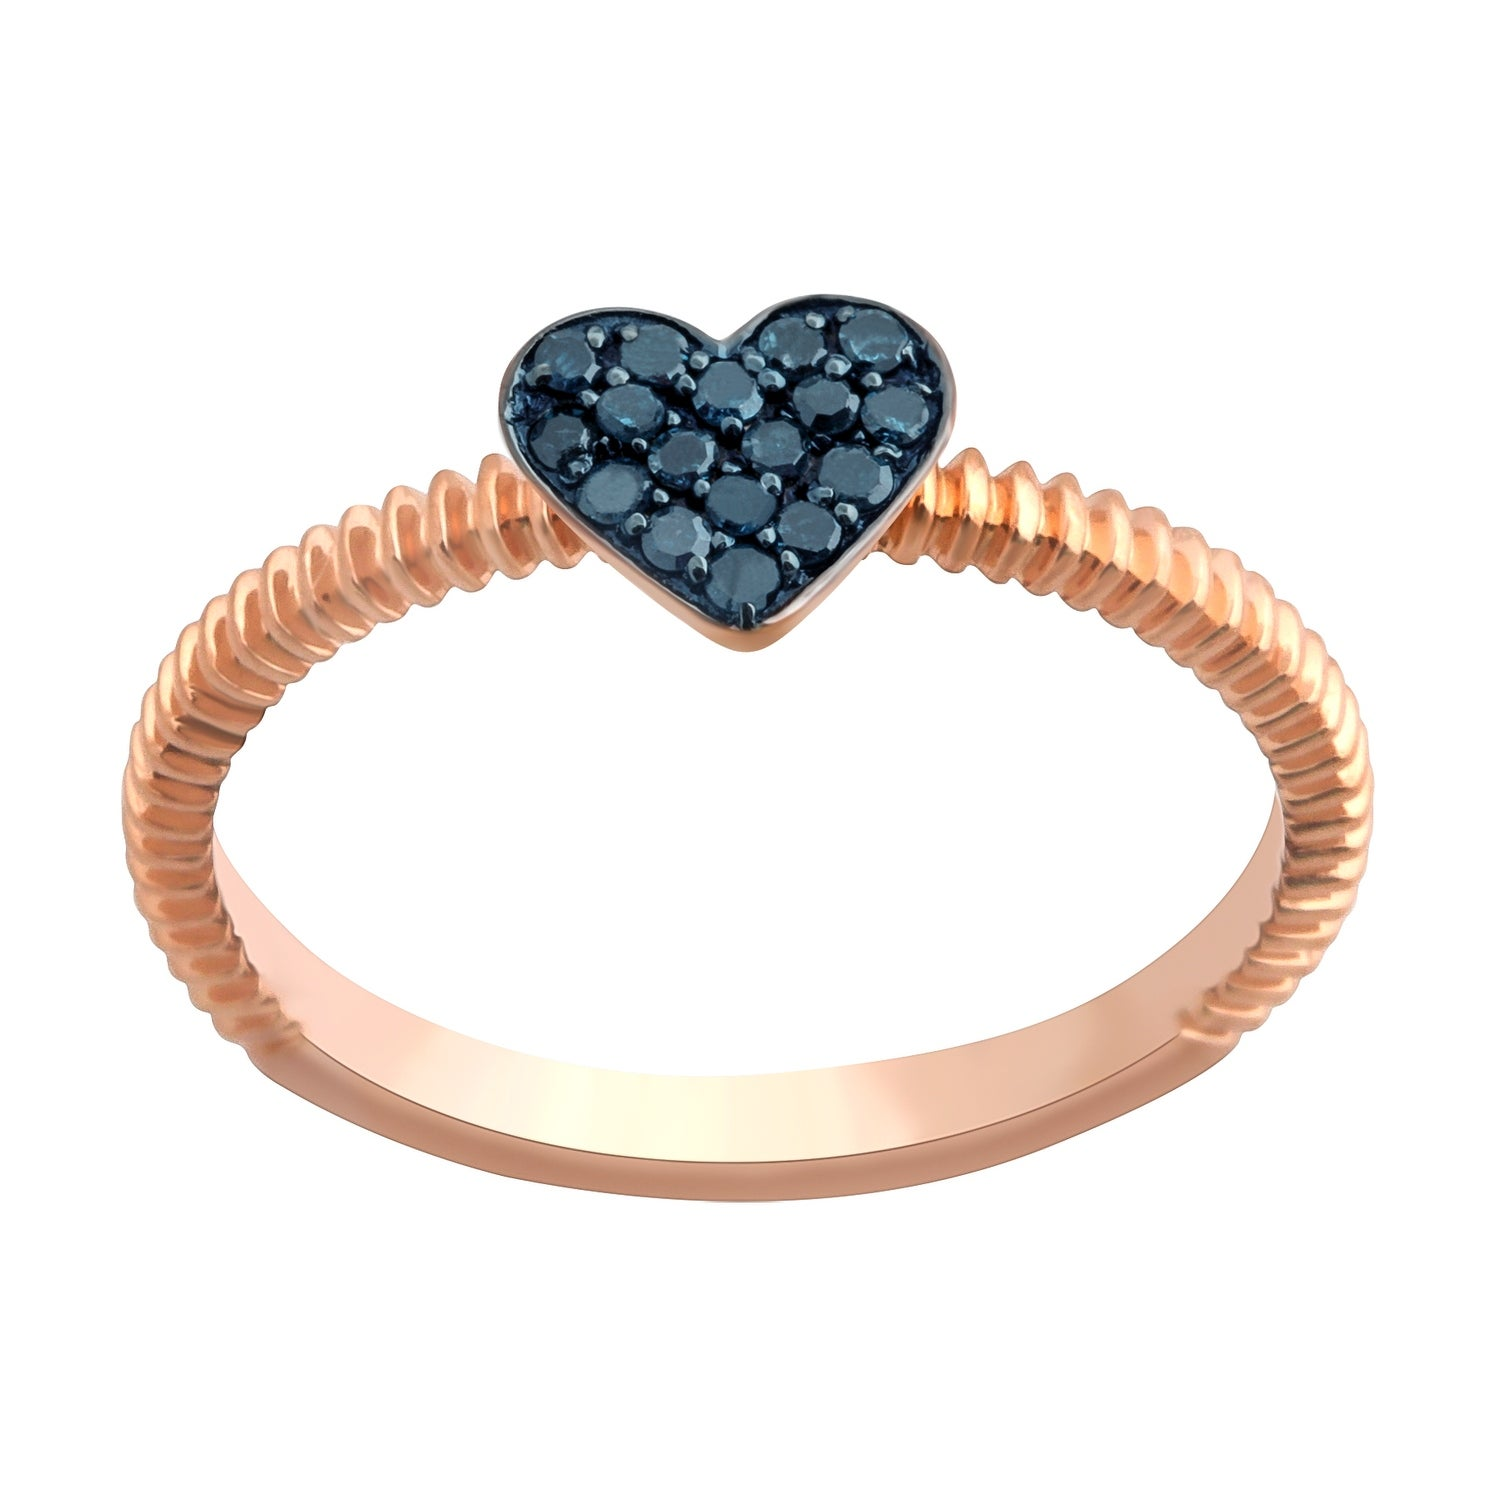 Prism Jewel Round Blue Diamond Heart Shaped Valentine Ring - Thumbnail 0